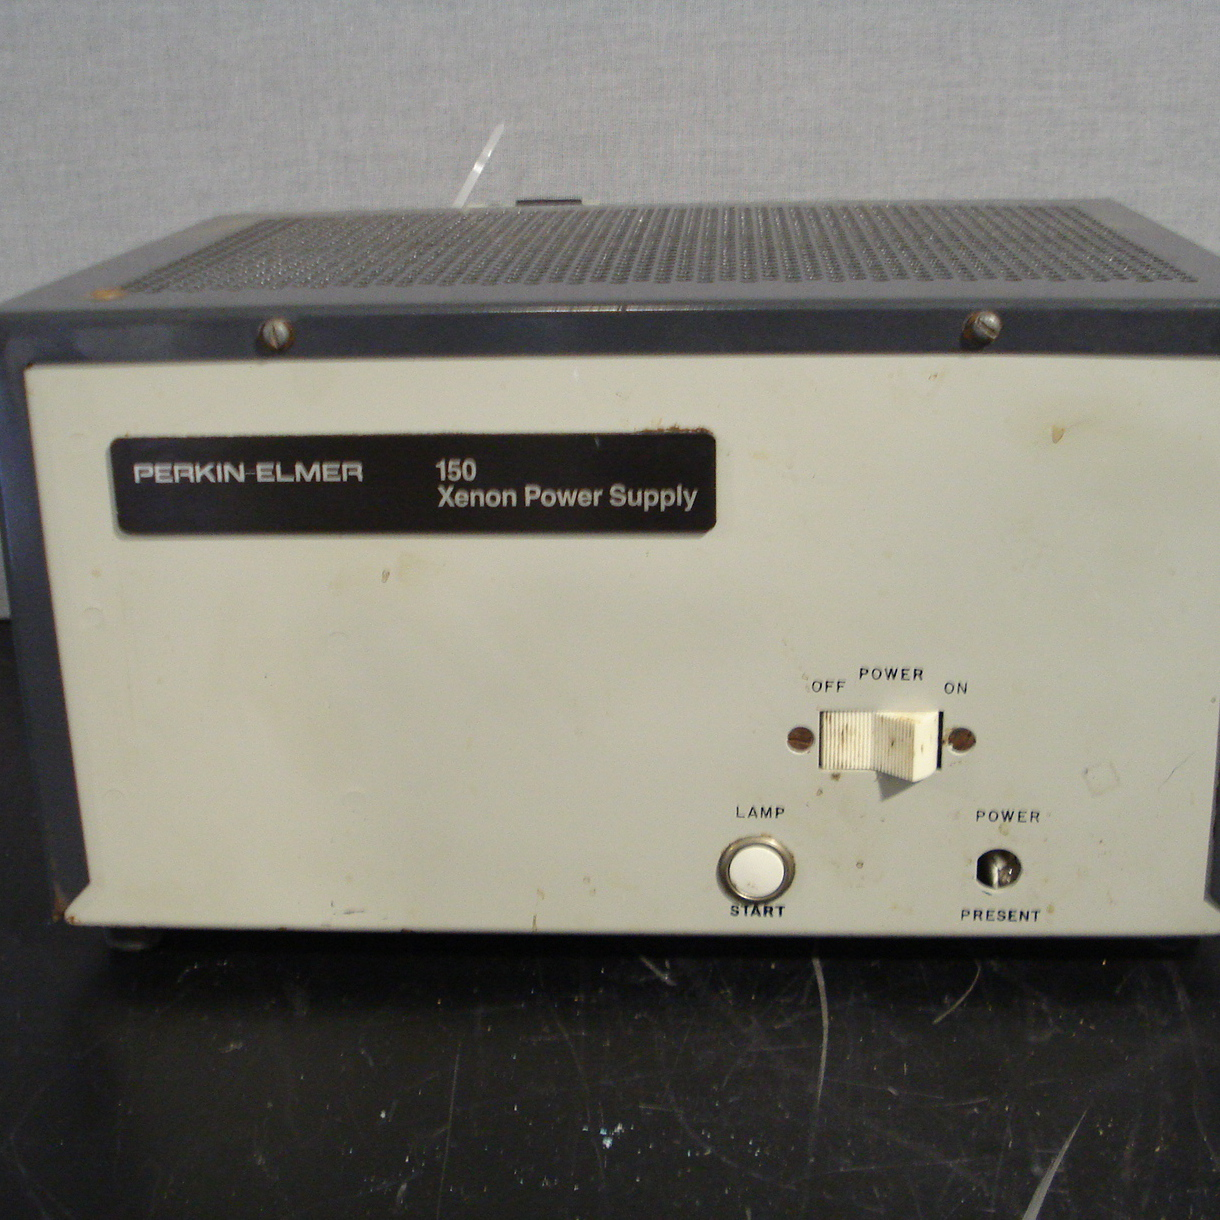 Perkin Elmer Xenon Power Supply Model 150 Image